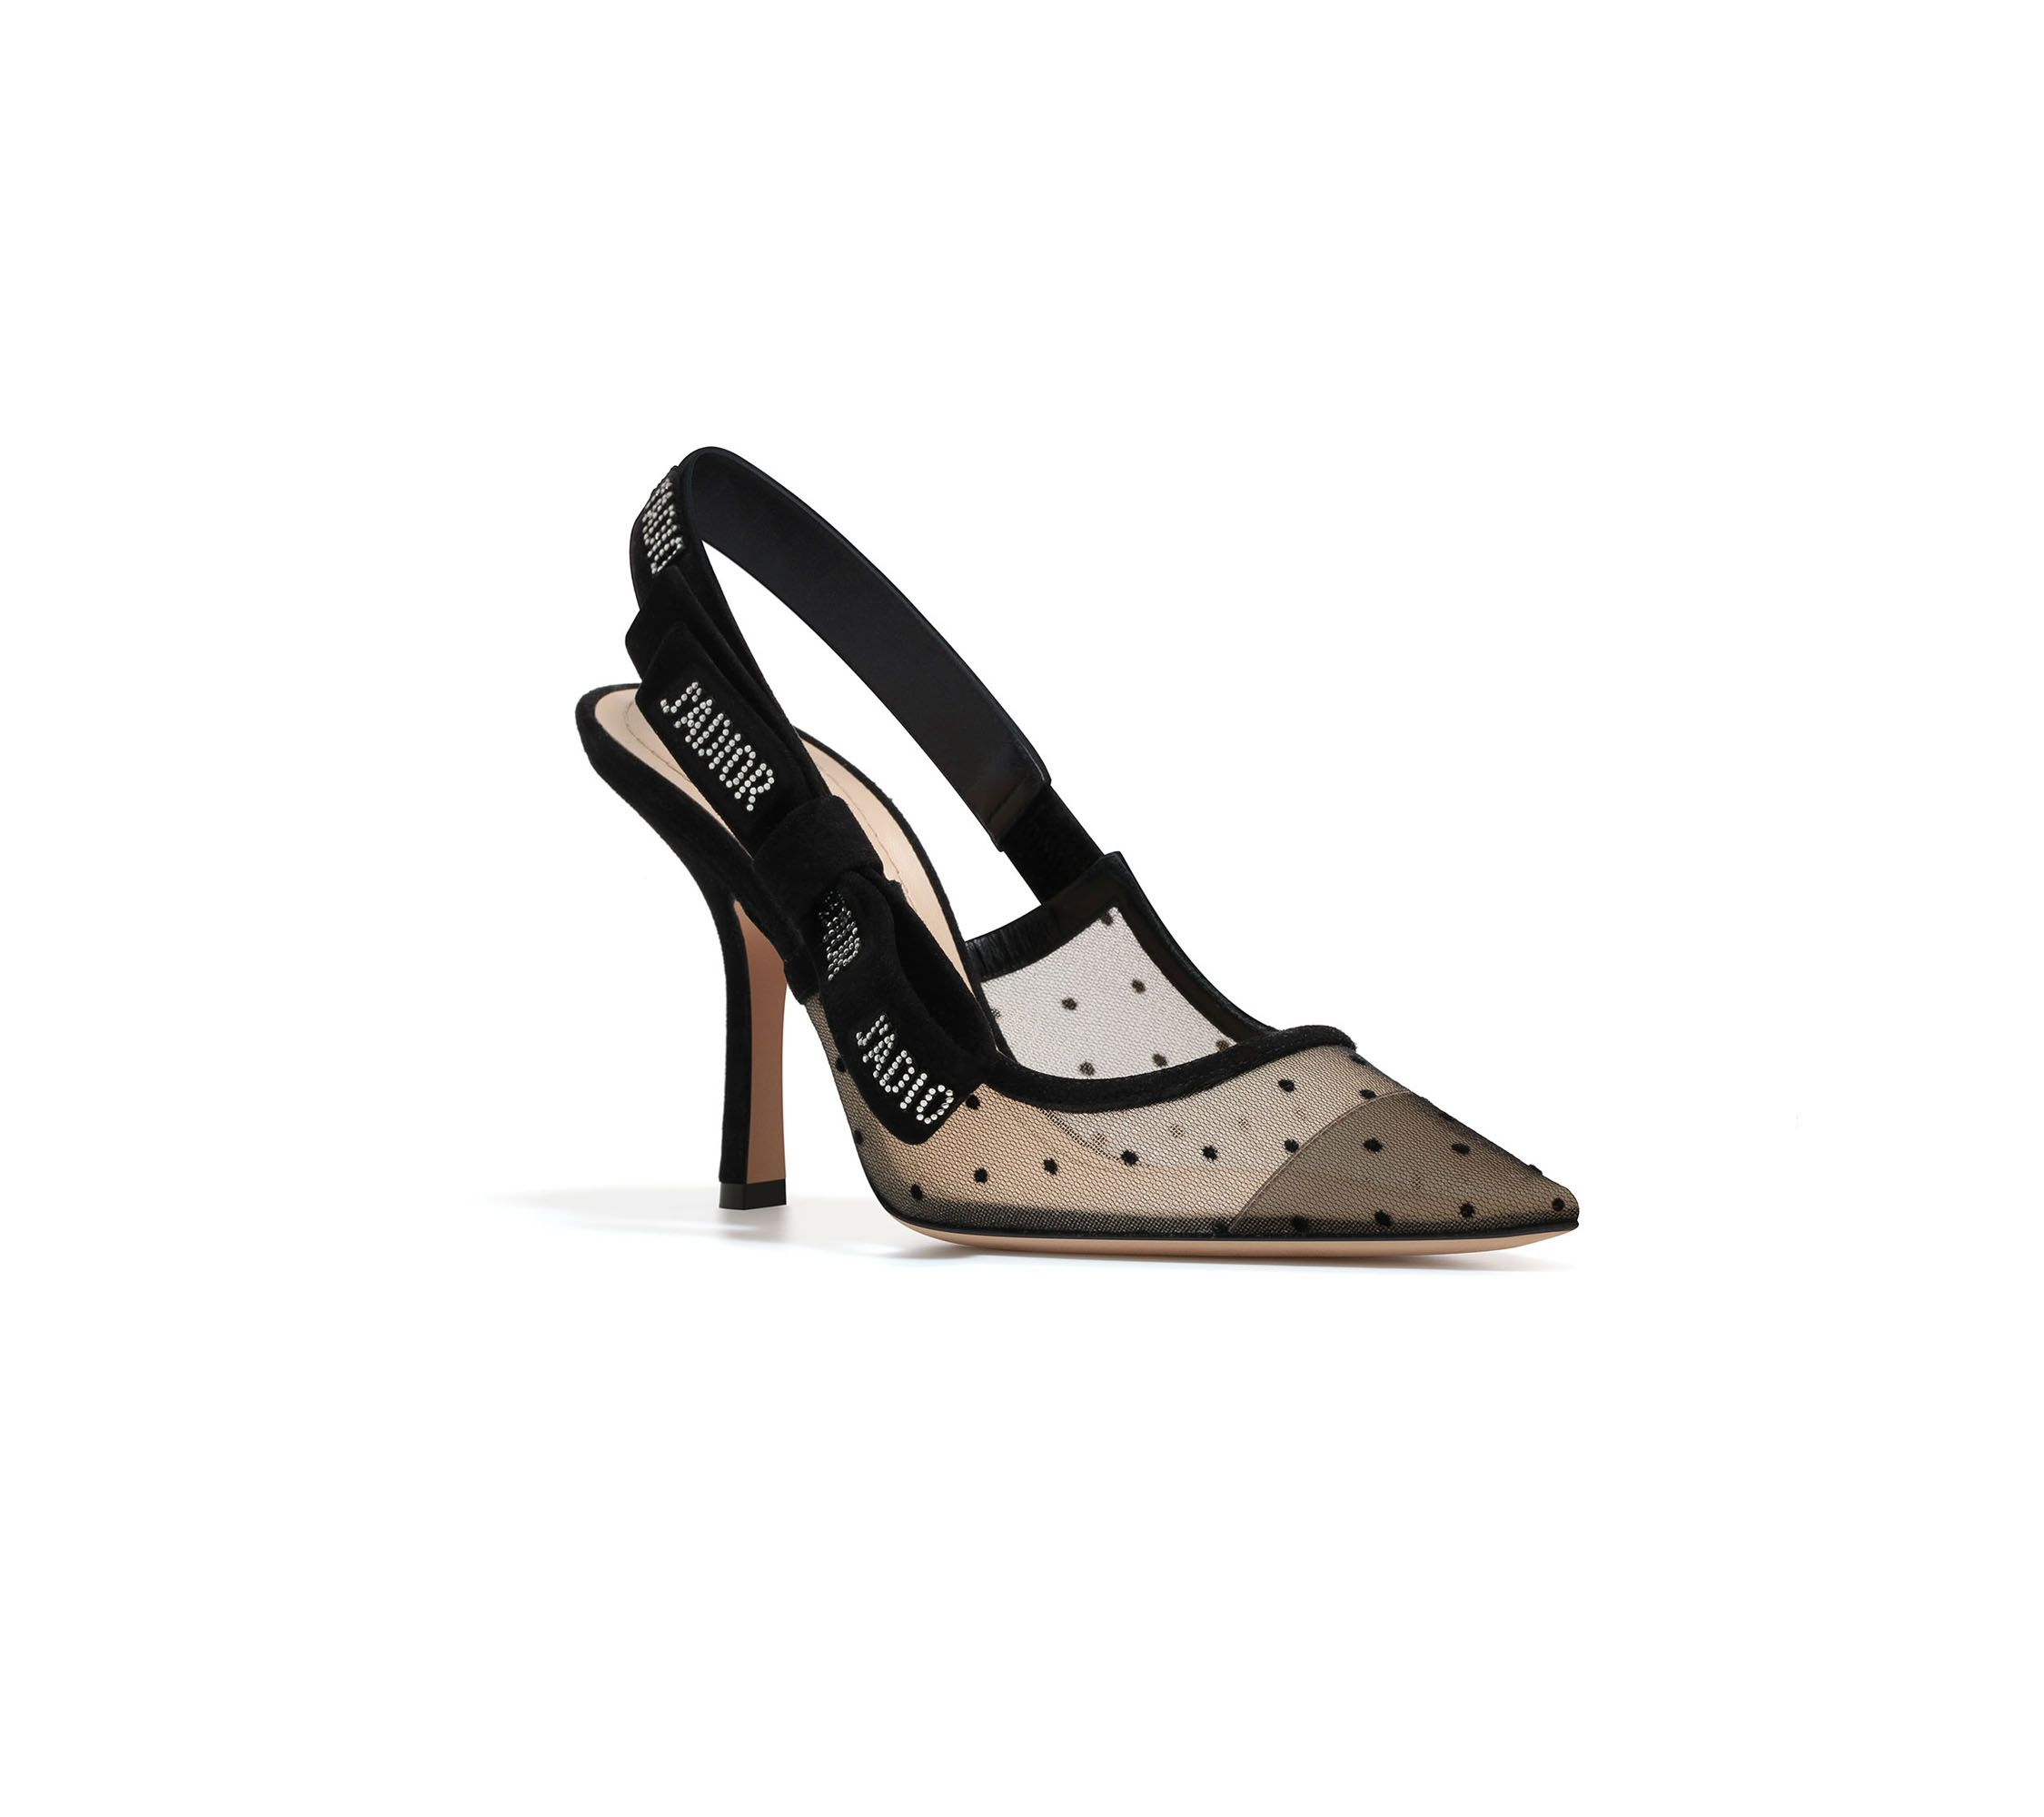 High-heeled shoe in nude and black dotted swiss & rhinestones - Dior